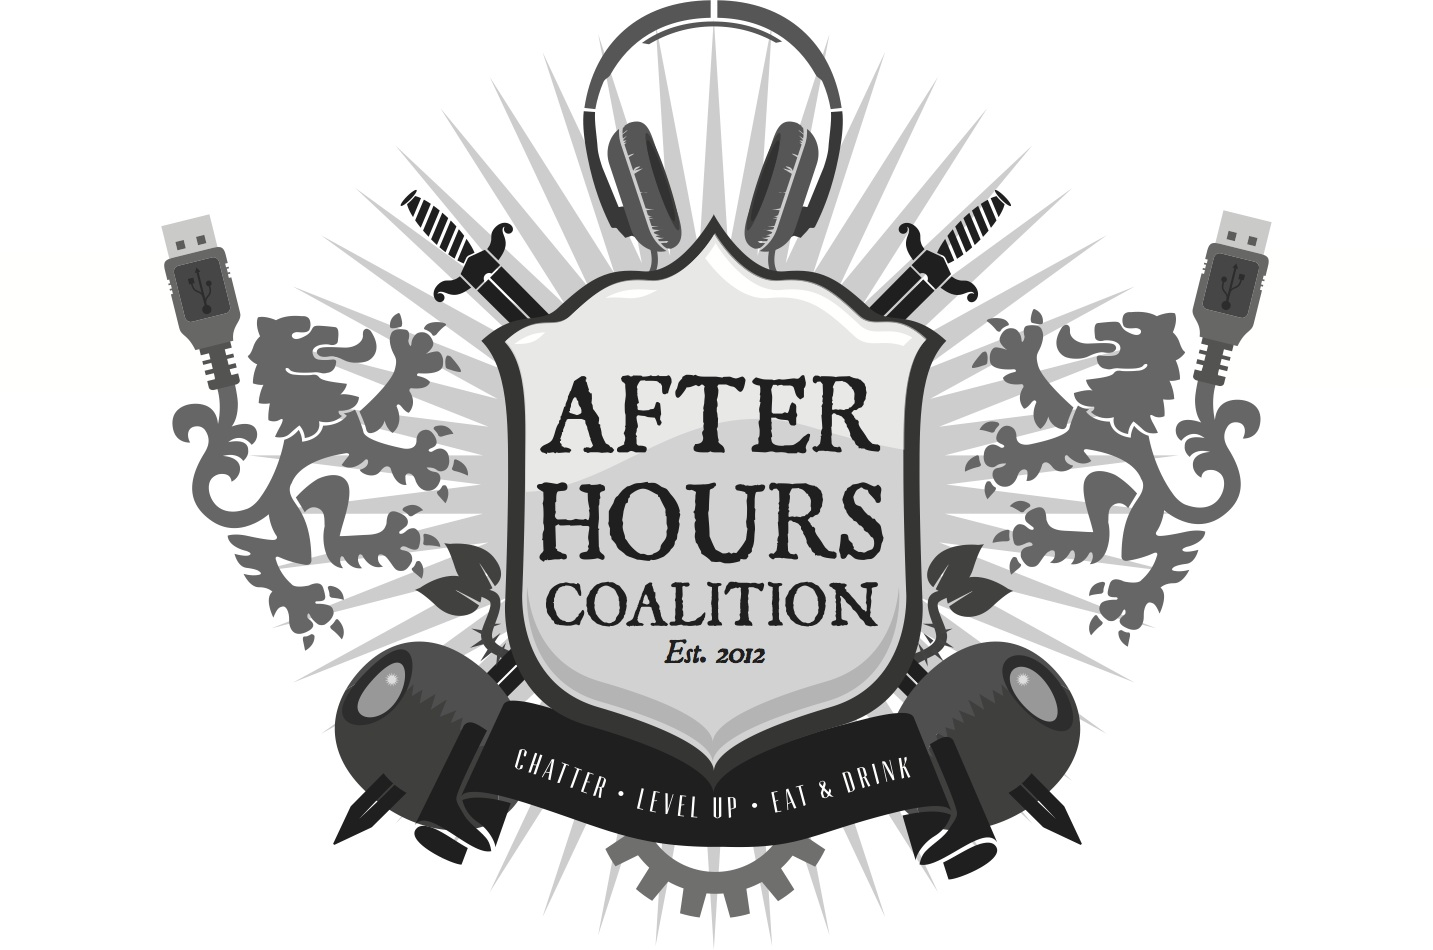 After Hours Coalition